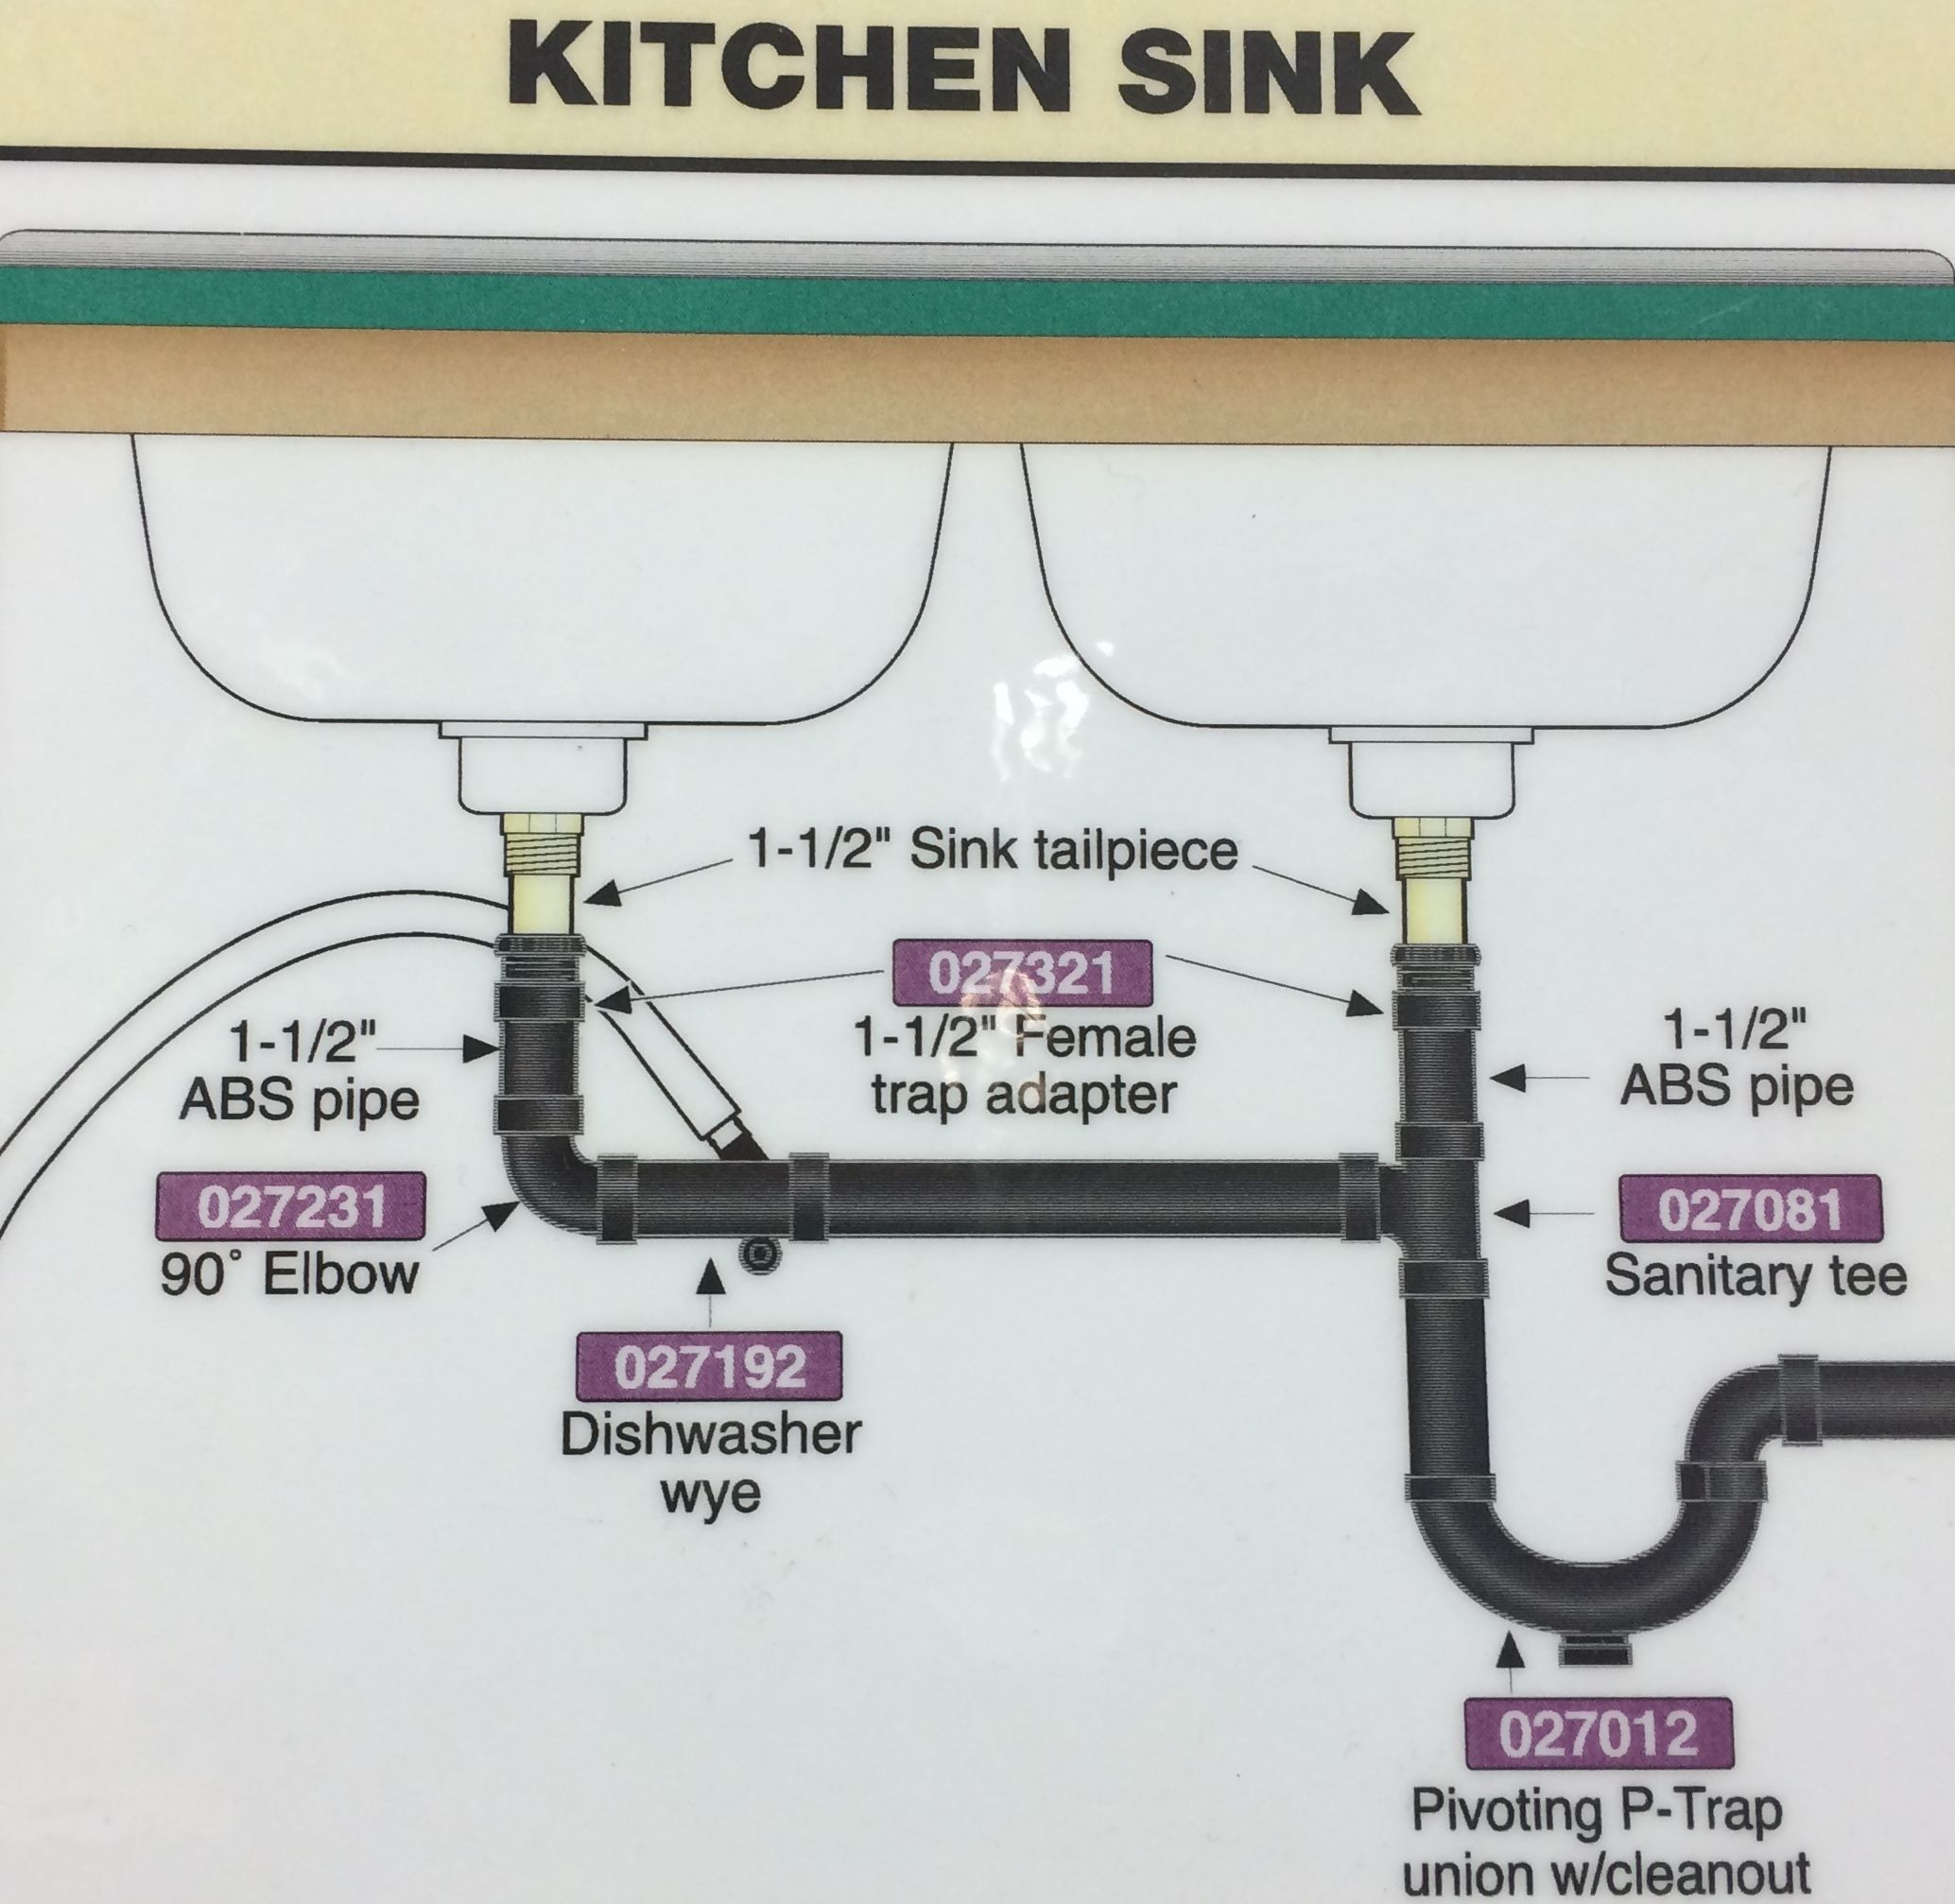 Modular Double Kitchen Sink Plumbing With Dishwasher | Plumbing | Pinterest regarding How To Unclog A Double Kitchen Sink